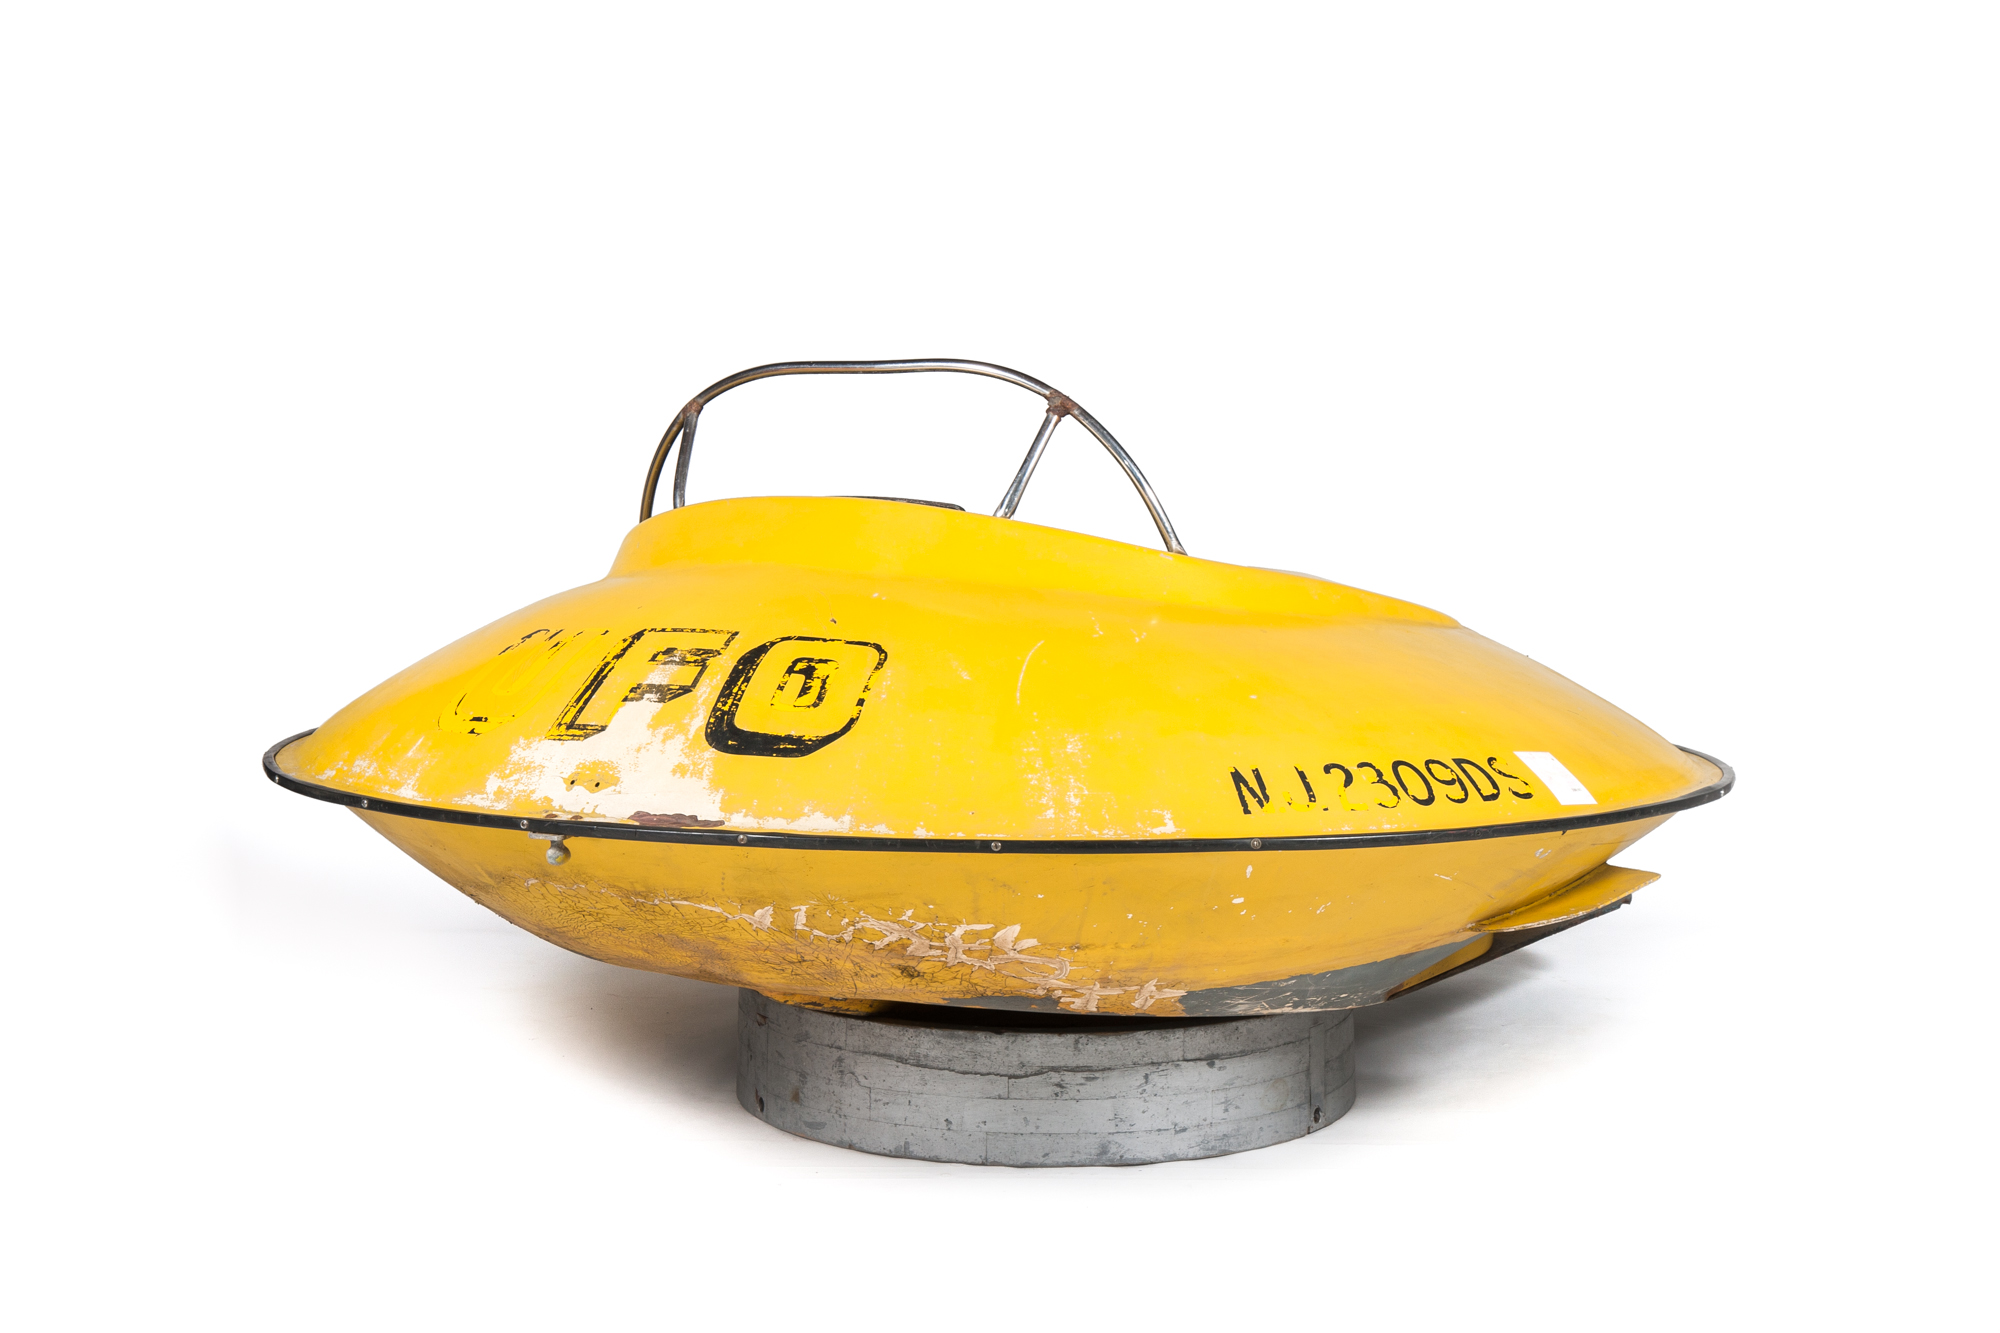 """UFO"" Flying Saucer Speed Boat (circa 1969) - Diameter 7'6"""